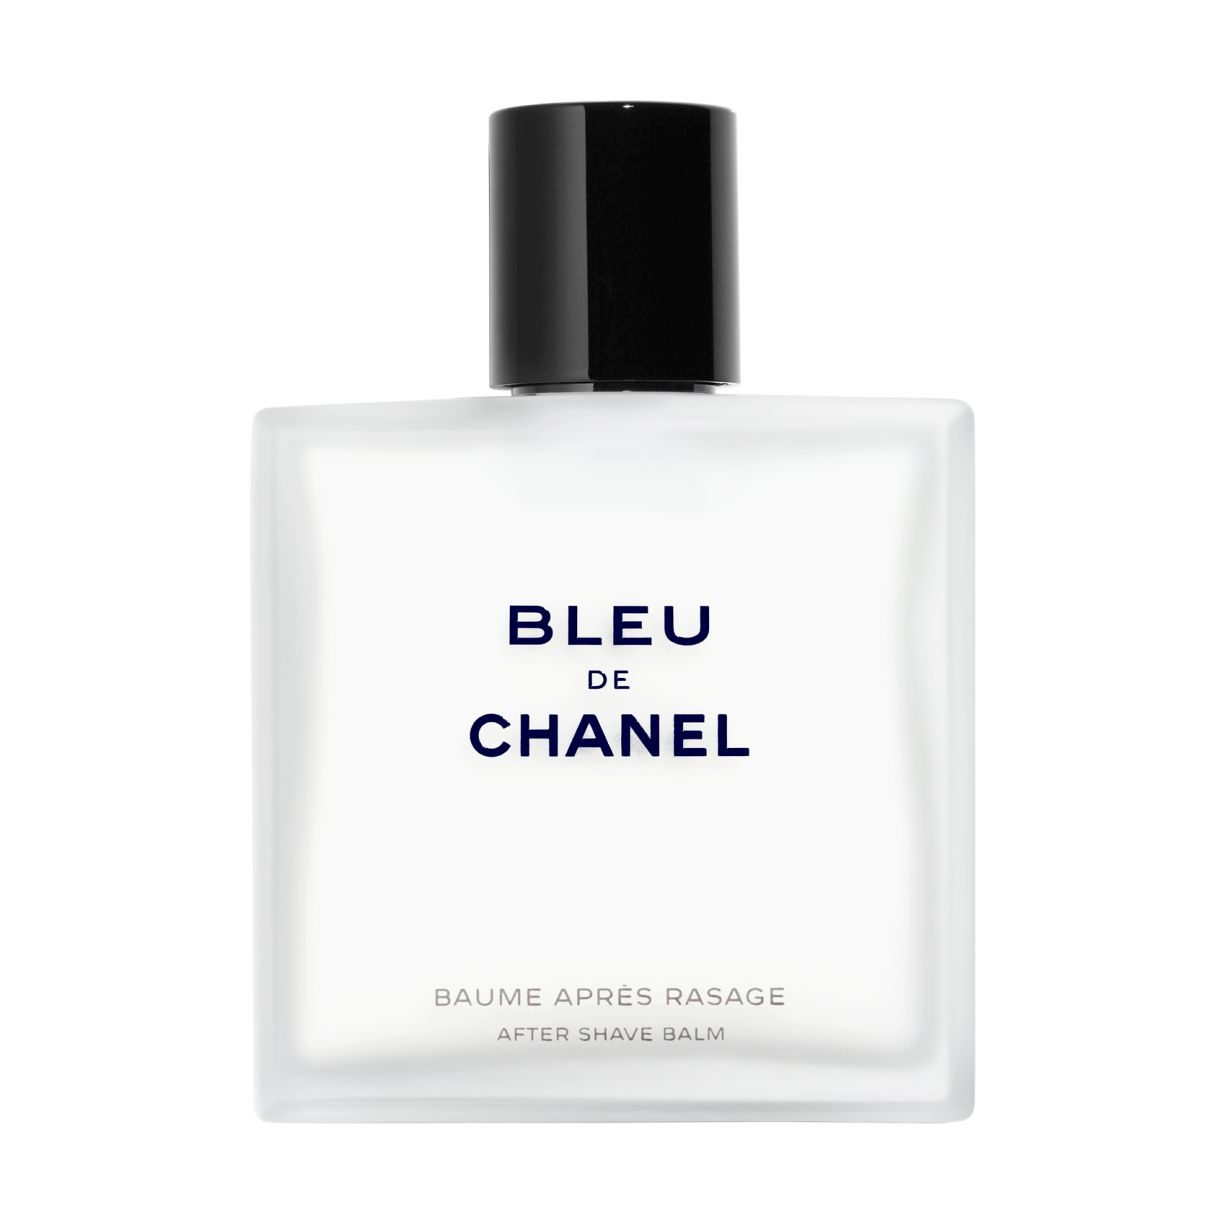 BLEU DE CHANEL AFTER SHAVE BALM 90ml